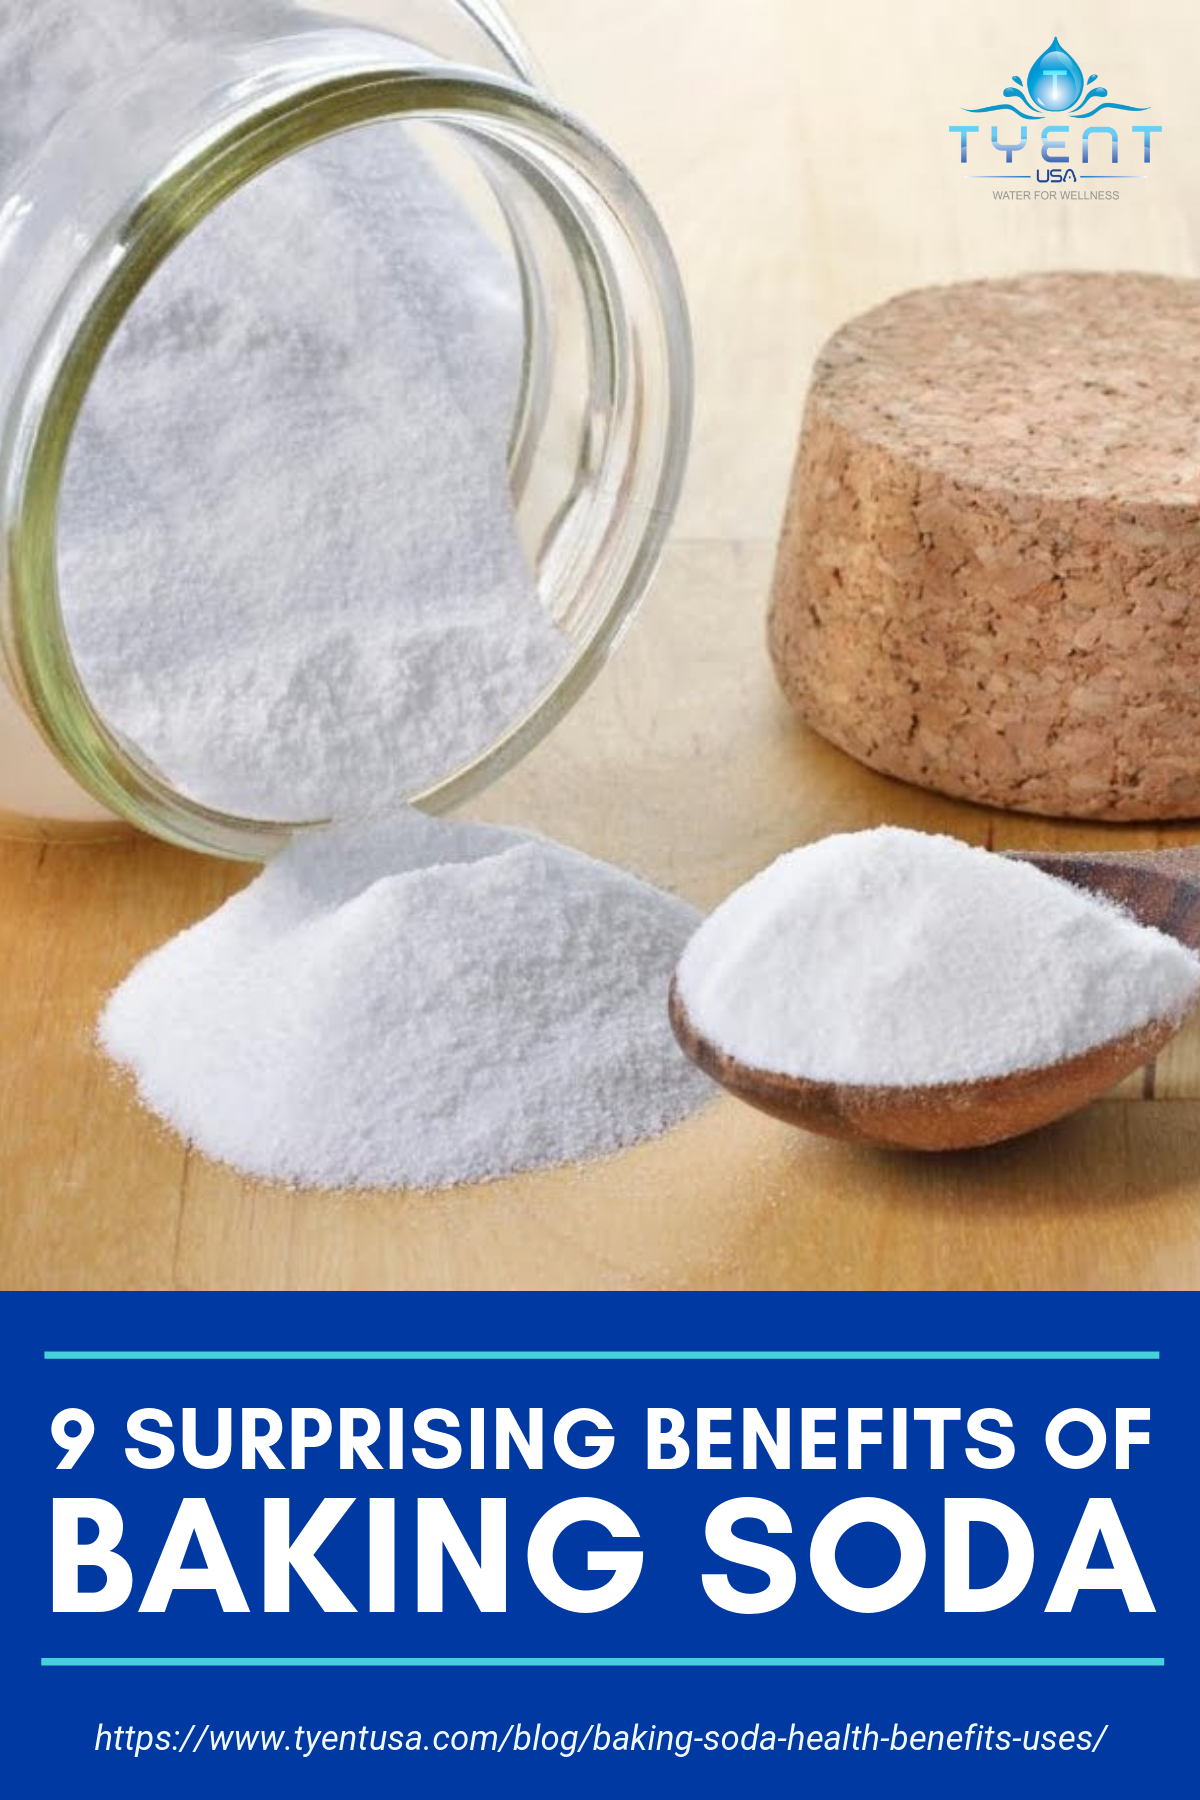 9 Surprising Benefits Of Baking Soda https://www.tyentusa.com/blog/baking-soda-health-benefits-uses/